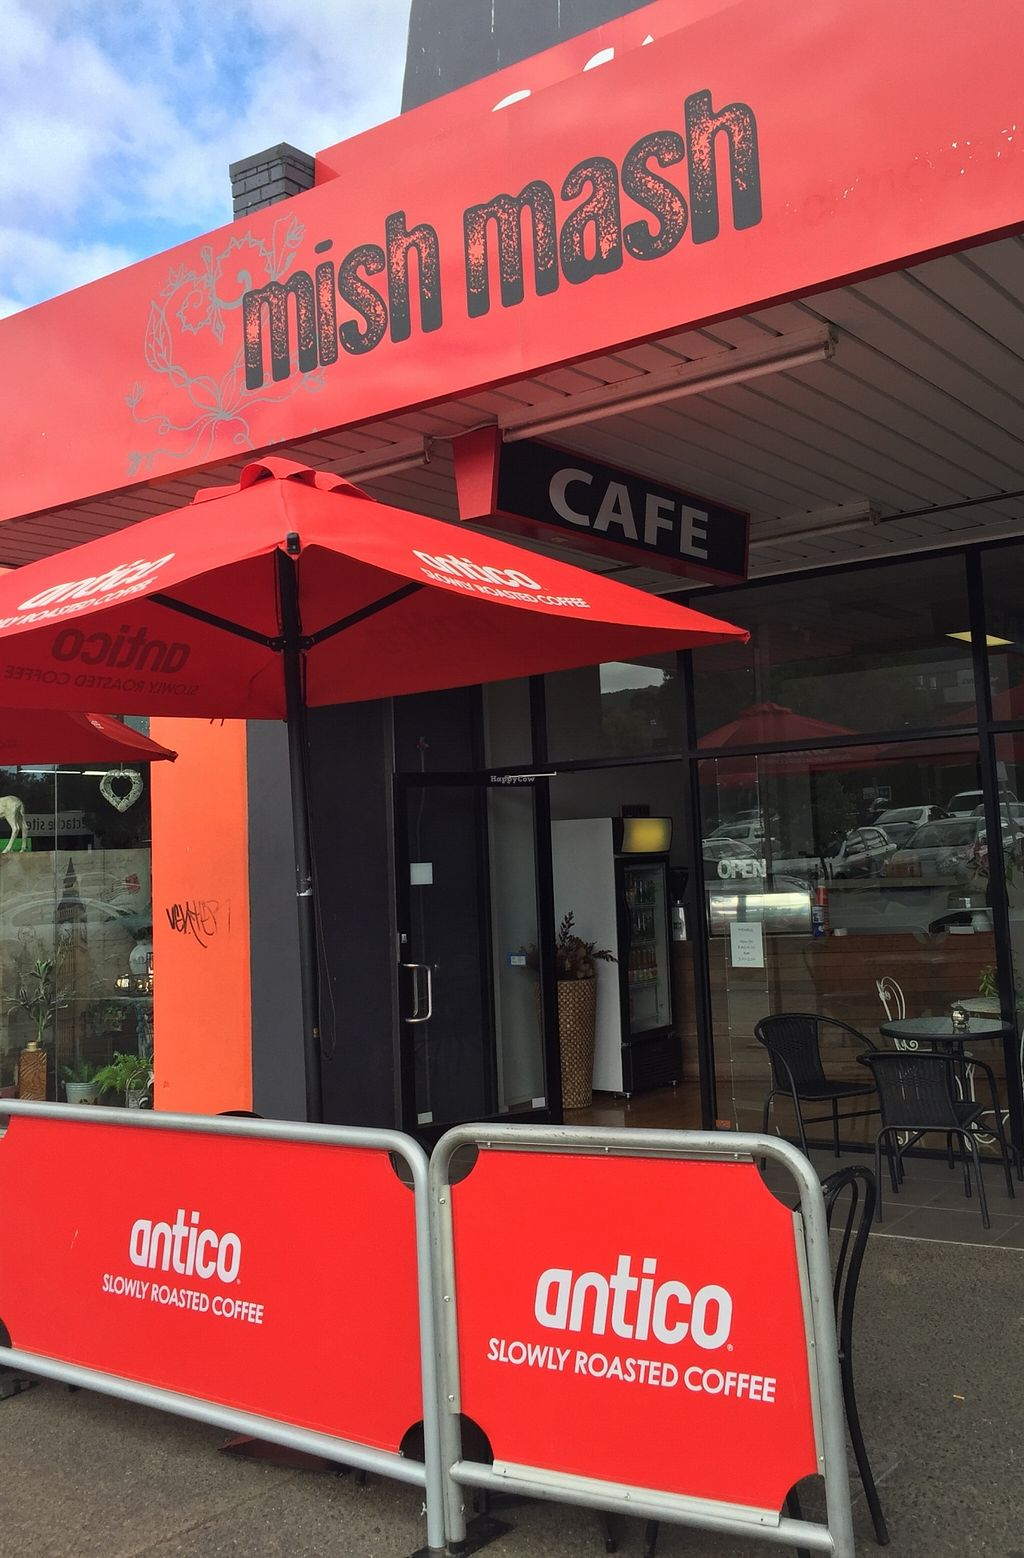 """Photo of Mish Mash Design & Cafe  by <a href=""""/members/profile/karlaess"""">karlaess</a> <br/>Exterior (Dorset Square carpark entry) <br/> February 22, 2016  - <a href='/contact/abuse/image/69969/137335'>Report</a>"""